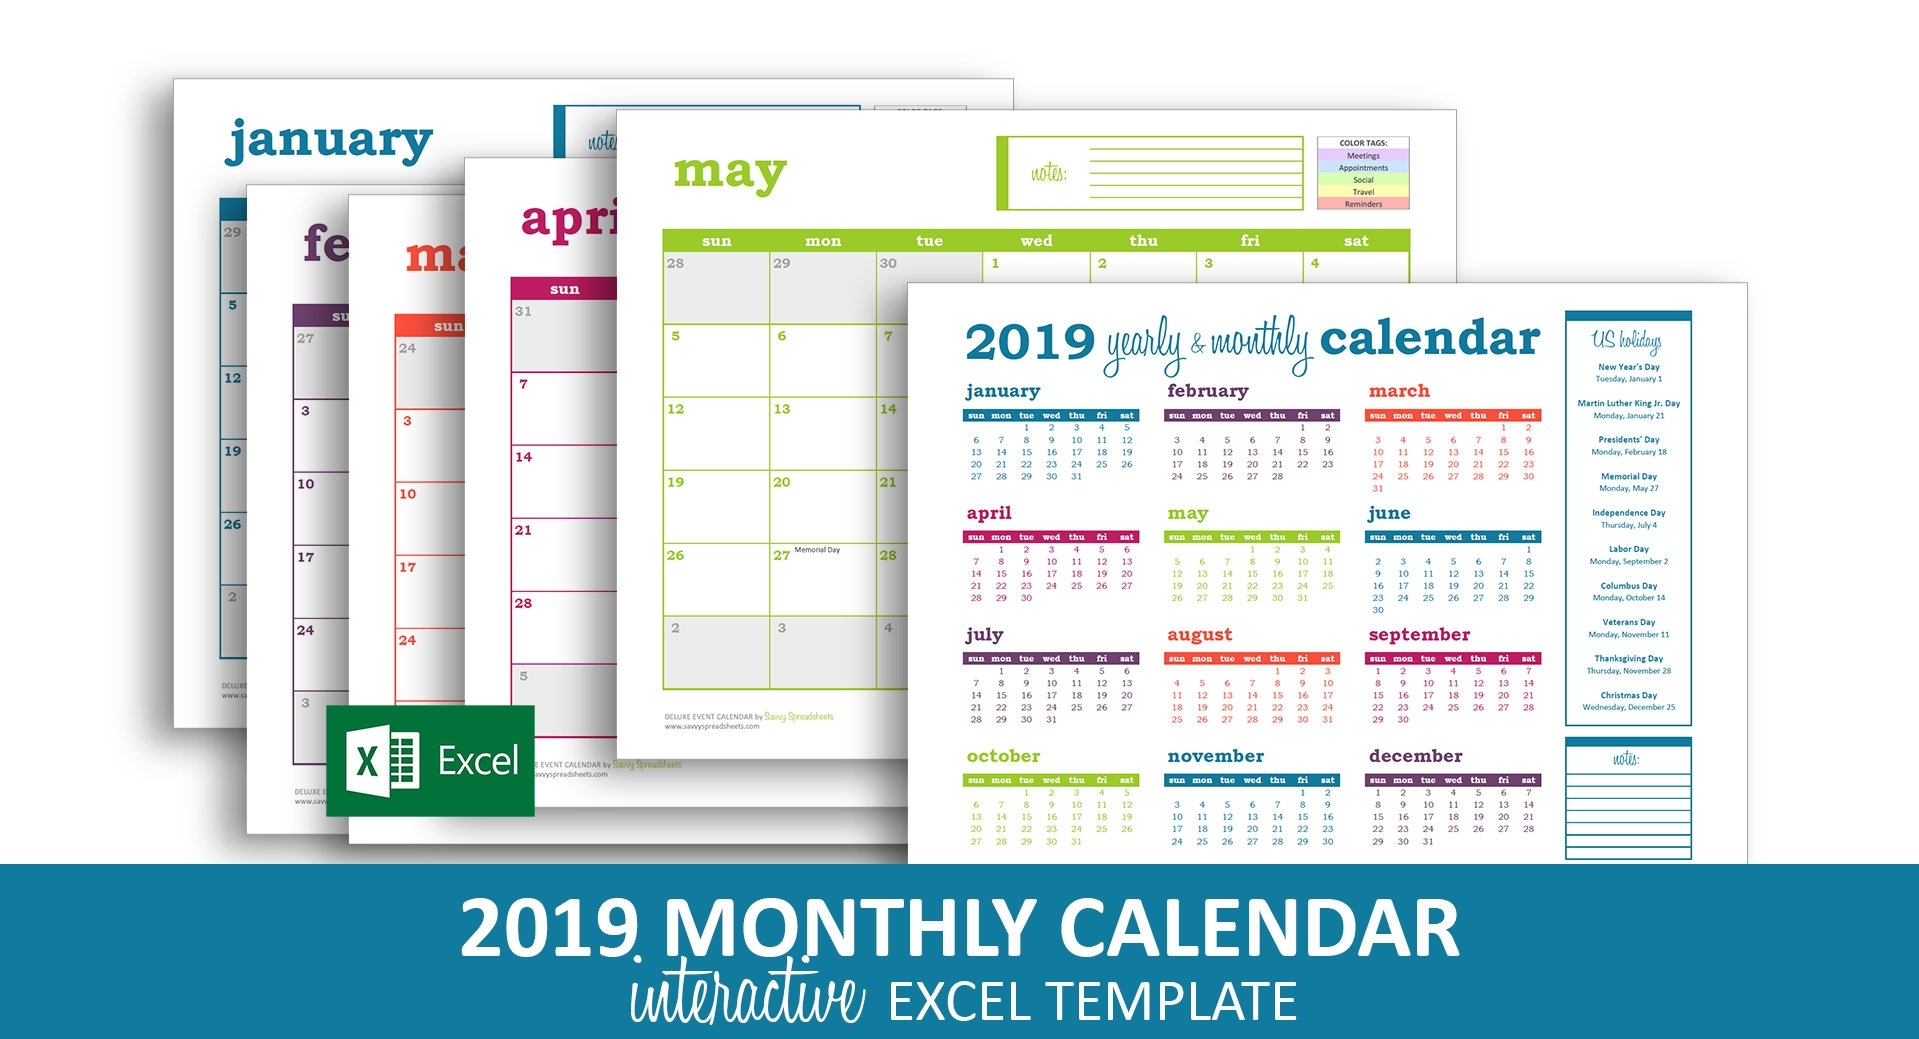 Deluxe Event Calendar 2019 Excel Template Printable | Etsy pertaining to Calendar 2020 Excell Romania